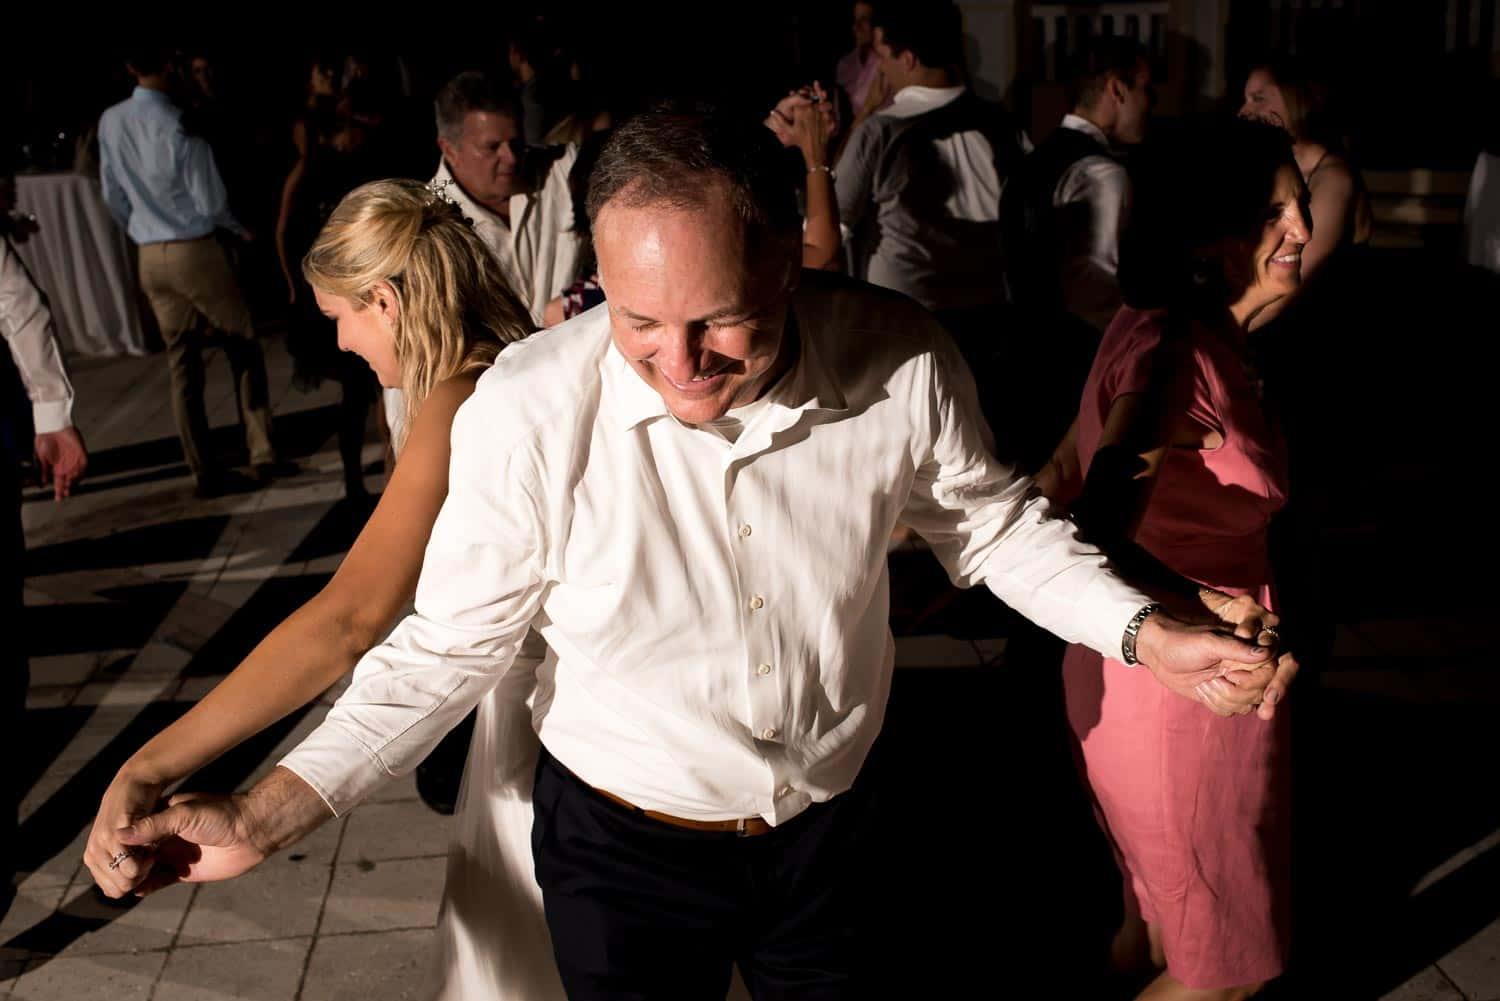 Dad and daughter bride dancing